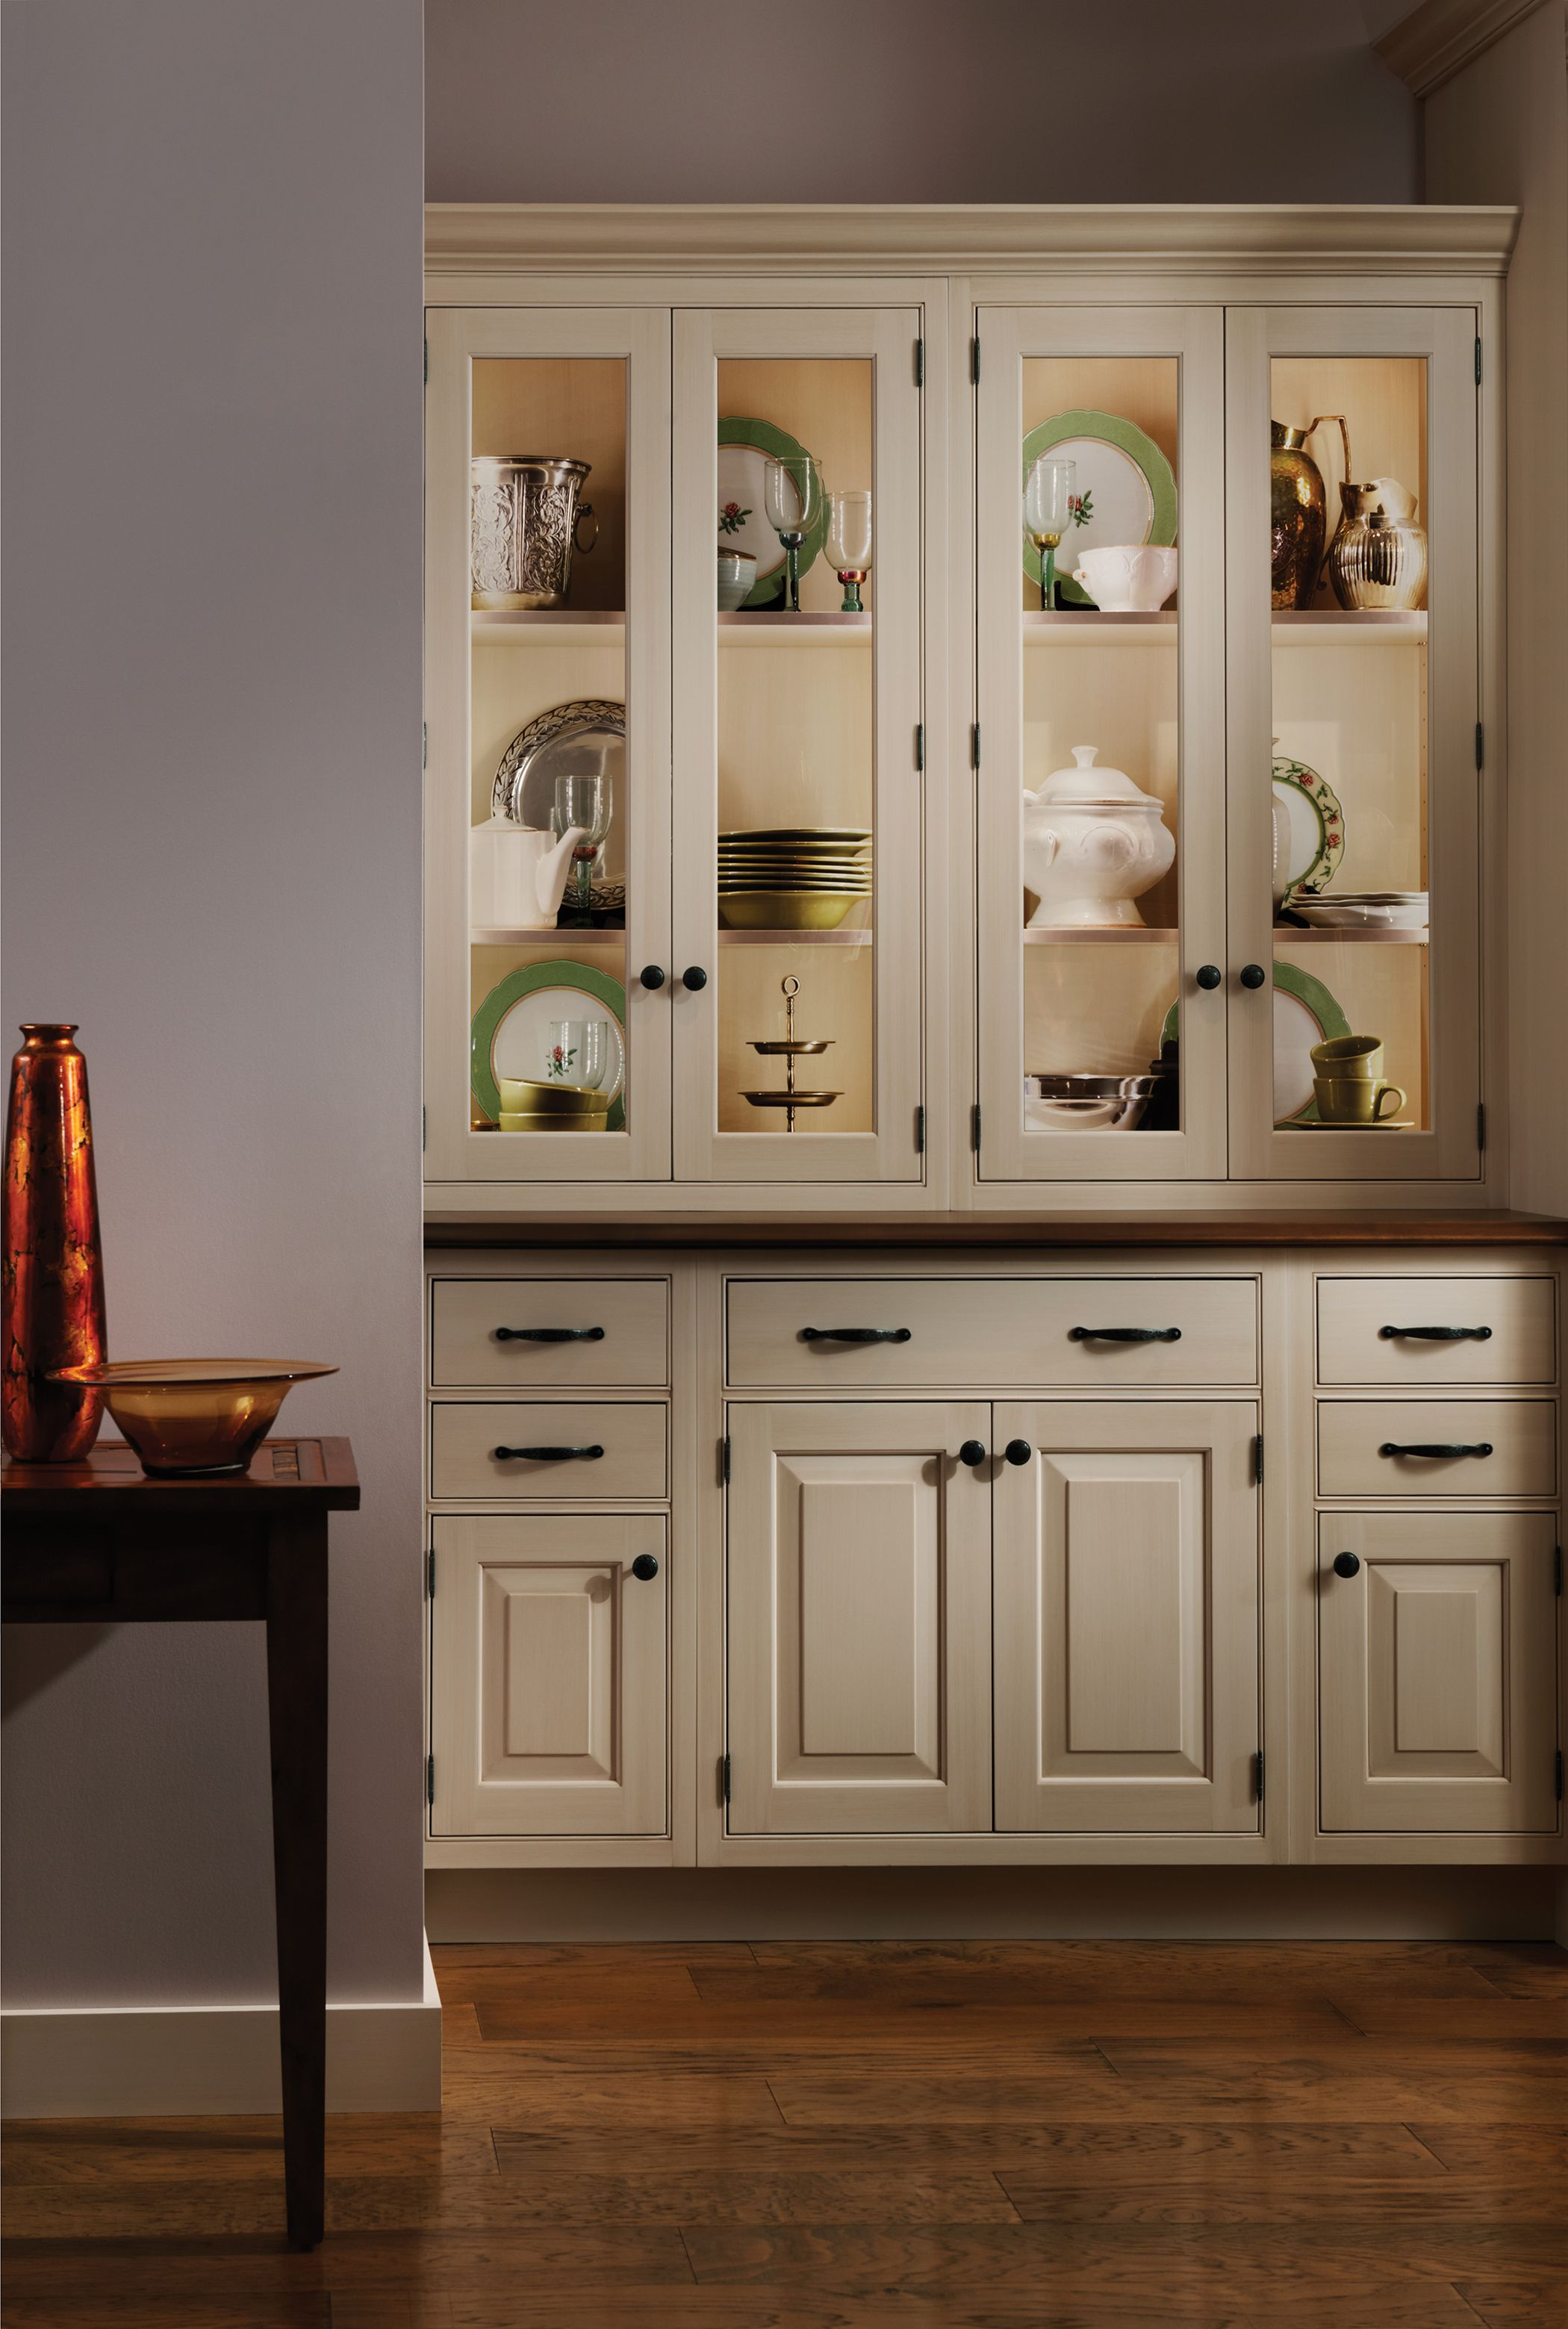 laricina white kitchen product cfm hayneedle invalkitchenstoragepantryinlaricinawhite hutch storage inval pantry master